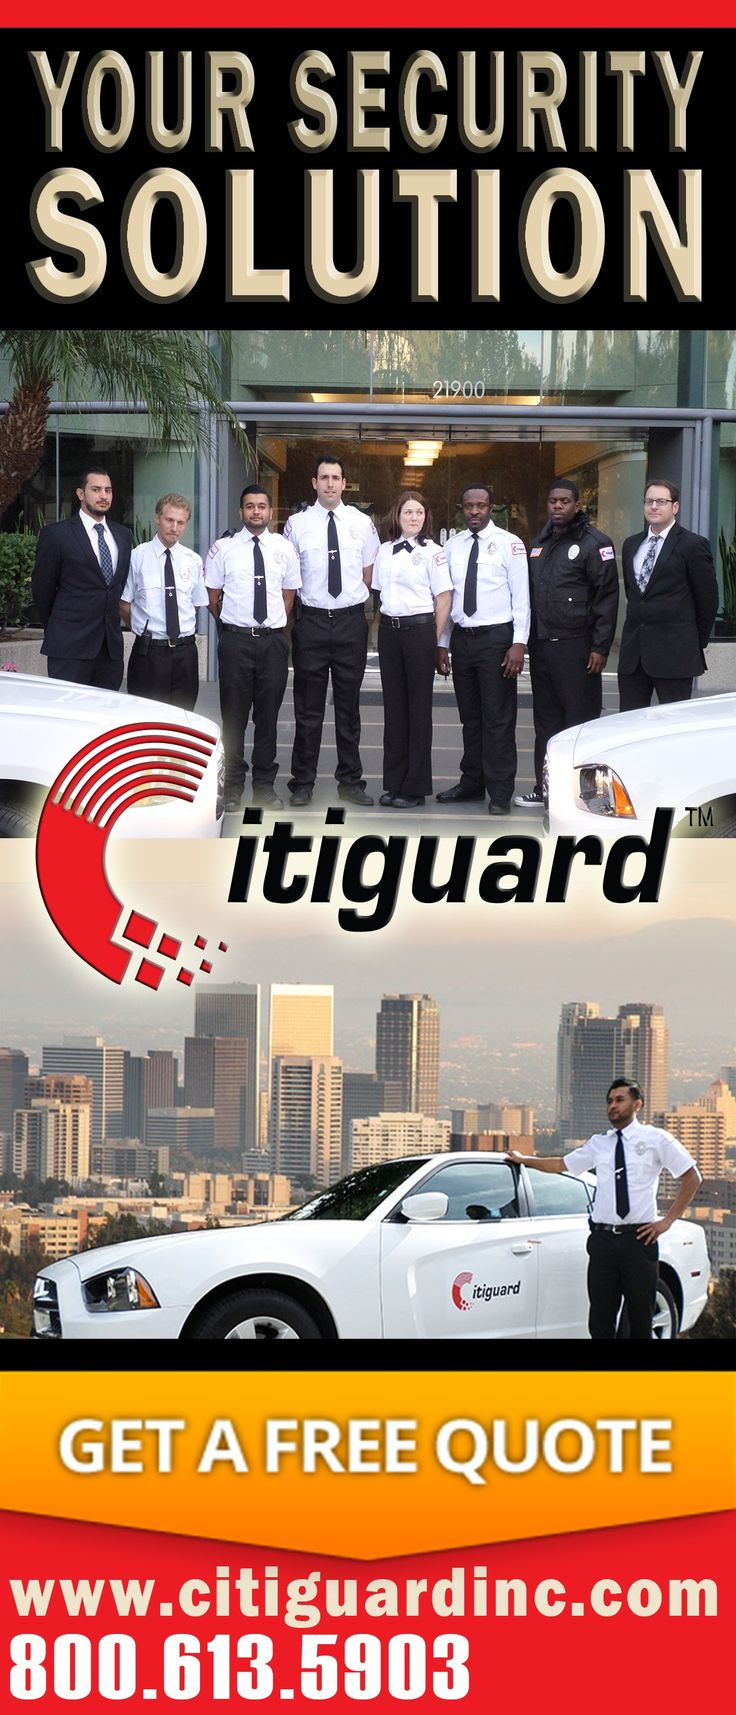 Citiguard your security solution get a free quote http